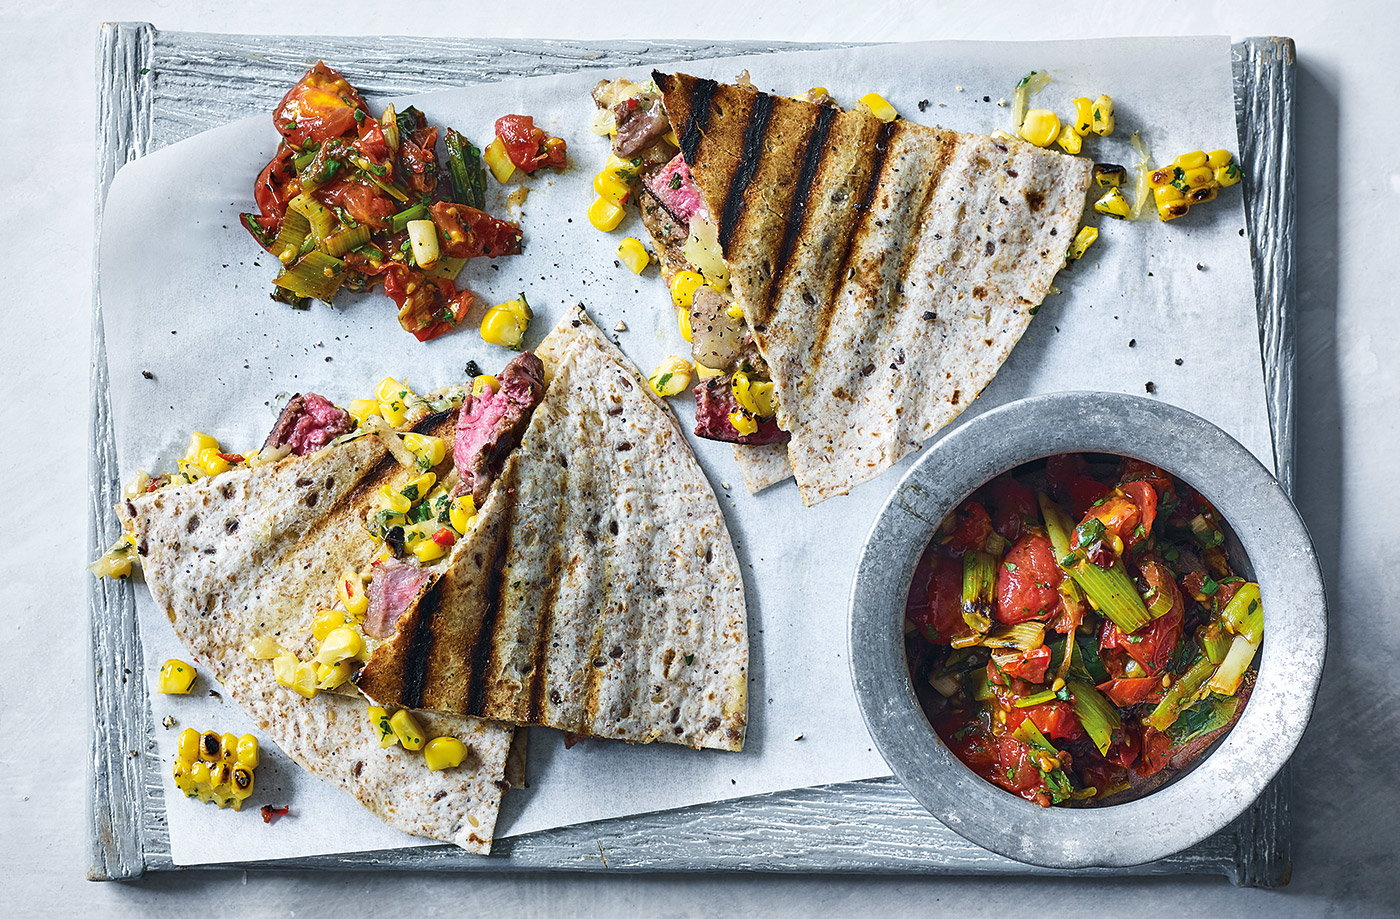 Steak quesadillas with charred tomato salsa recipe